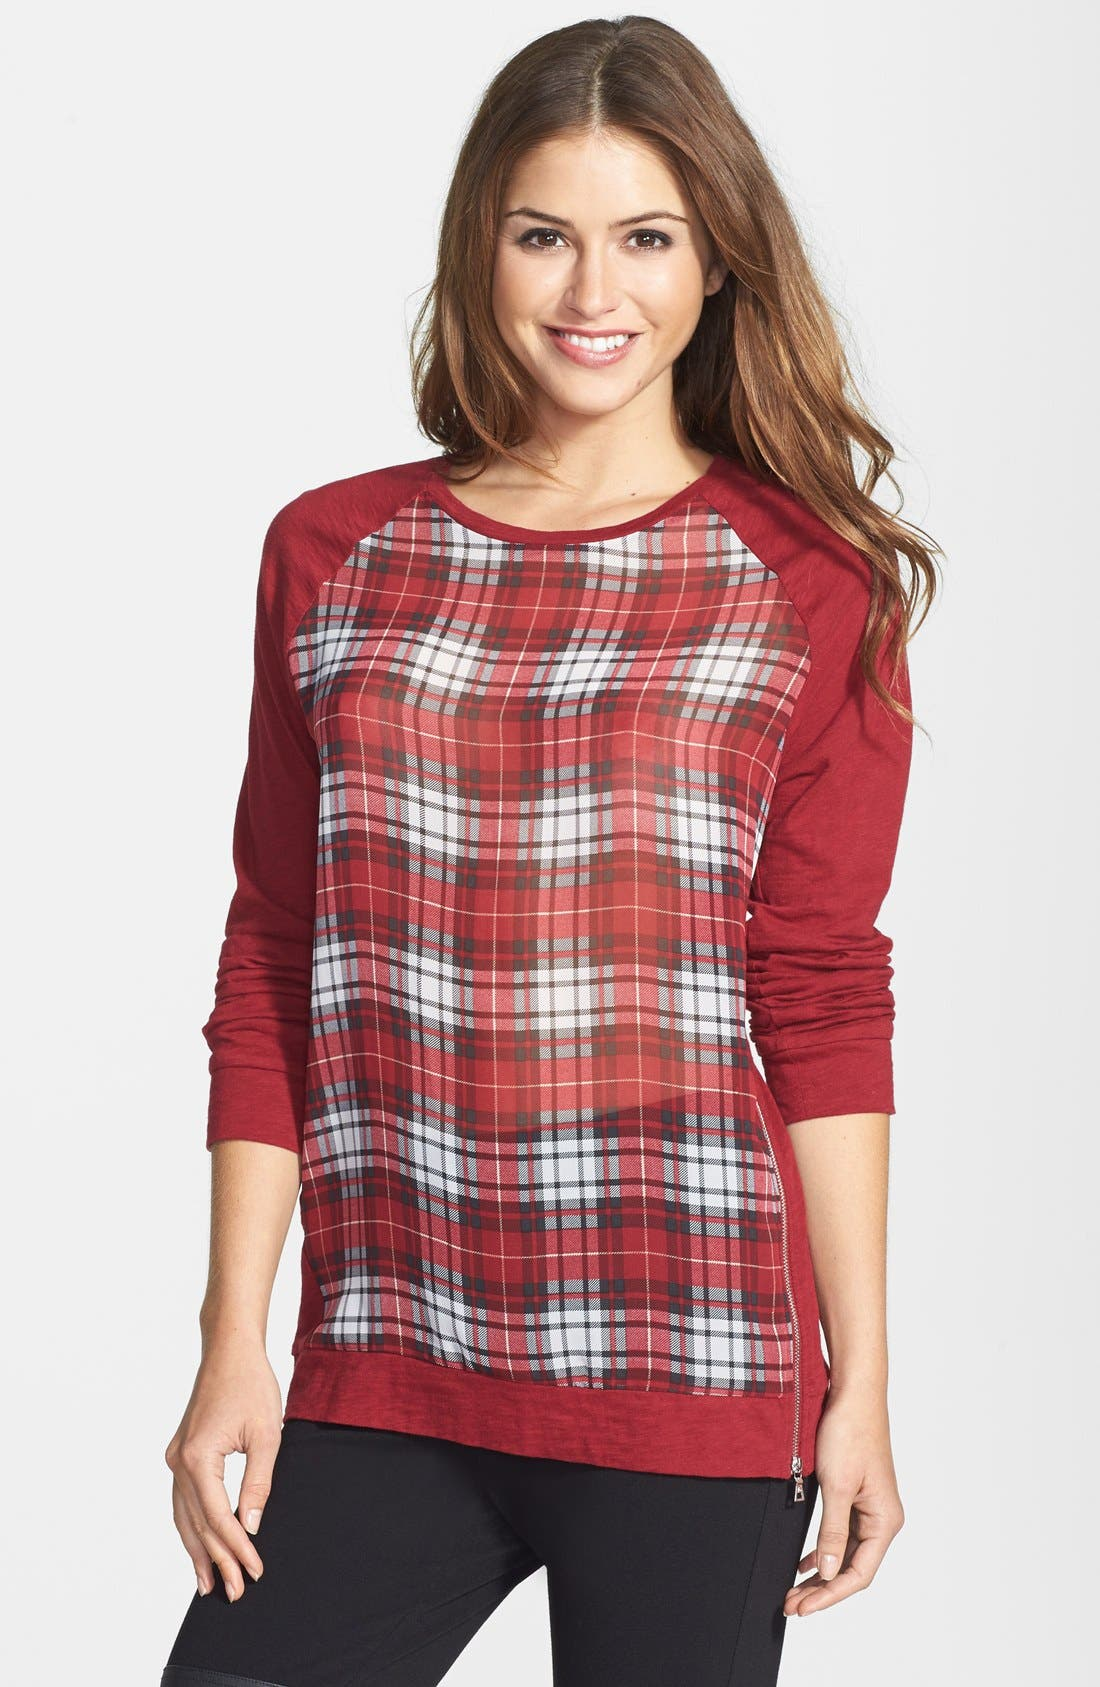 Main Image - Two by Vince Camuto Tartan Front Mixed Media Sweatshirt